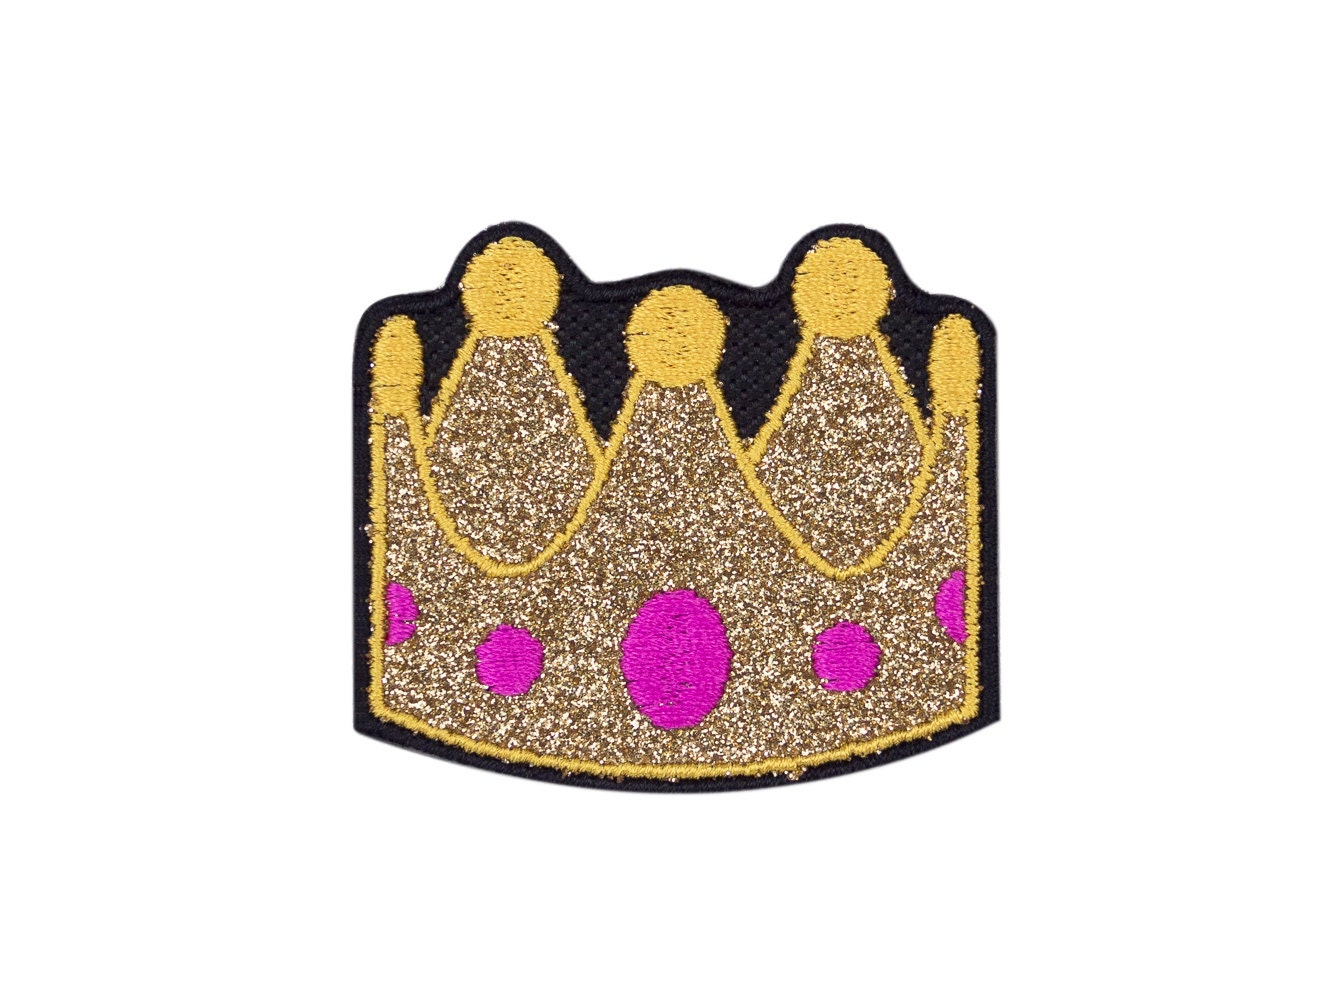 Crown tiara emoji embroidered iron on patch free shipping zoom biocorpaavc Gallery